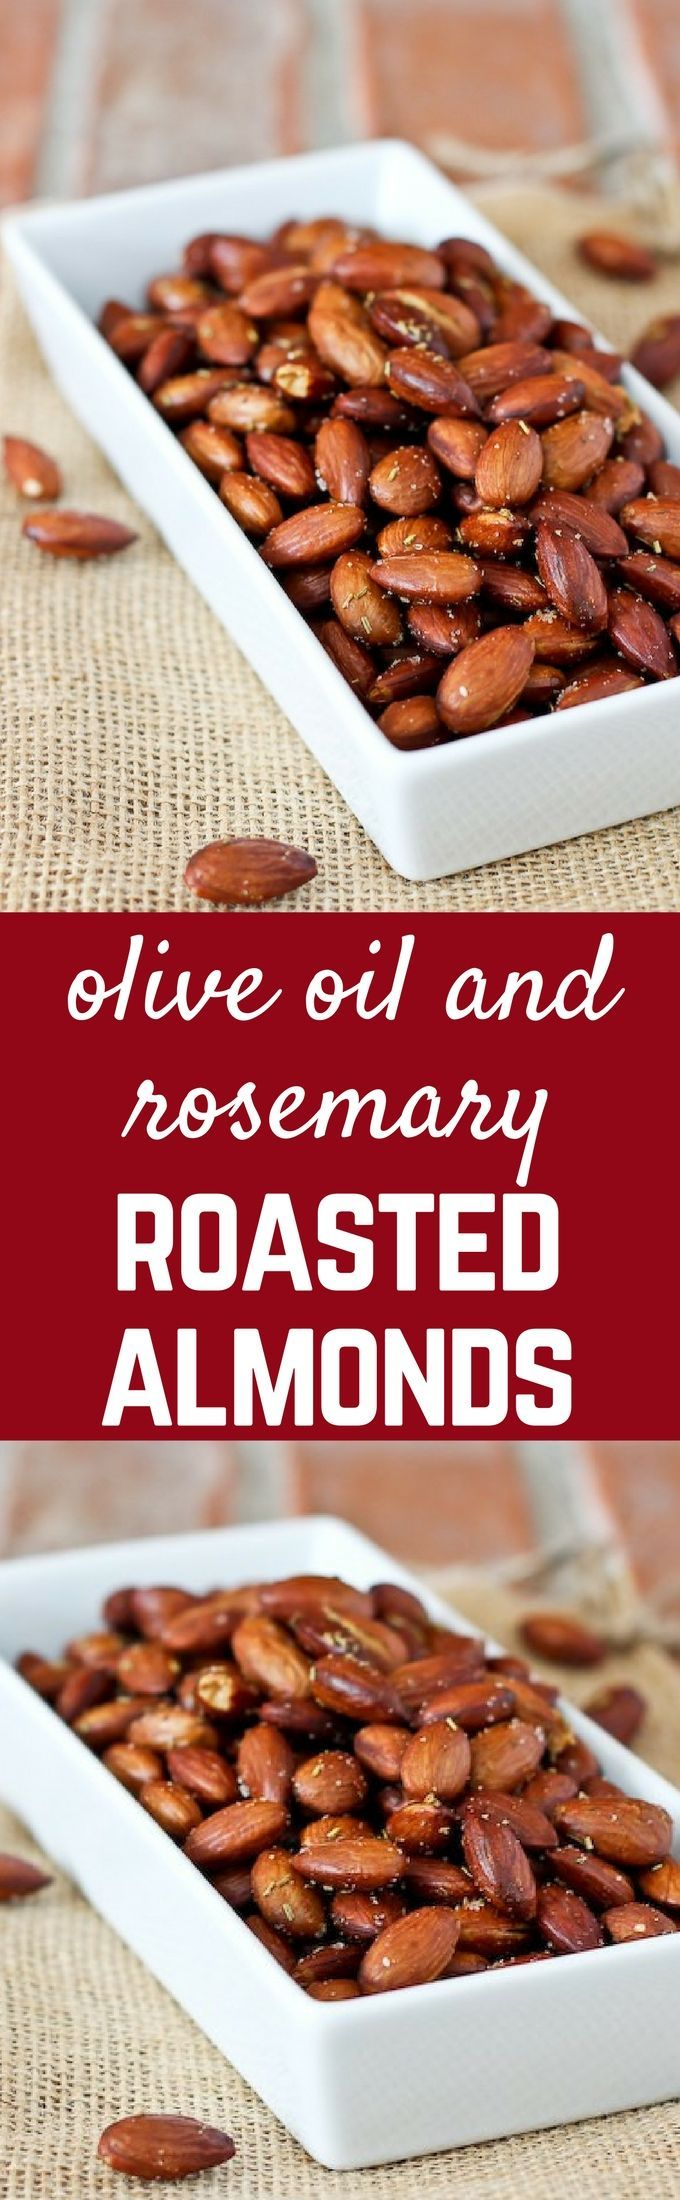 These olive oil and rosemary roasted almonds are an irresistible snack that you…